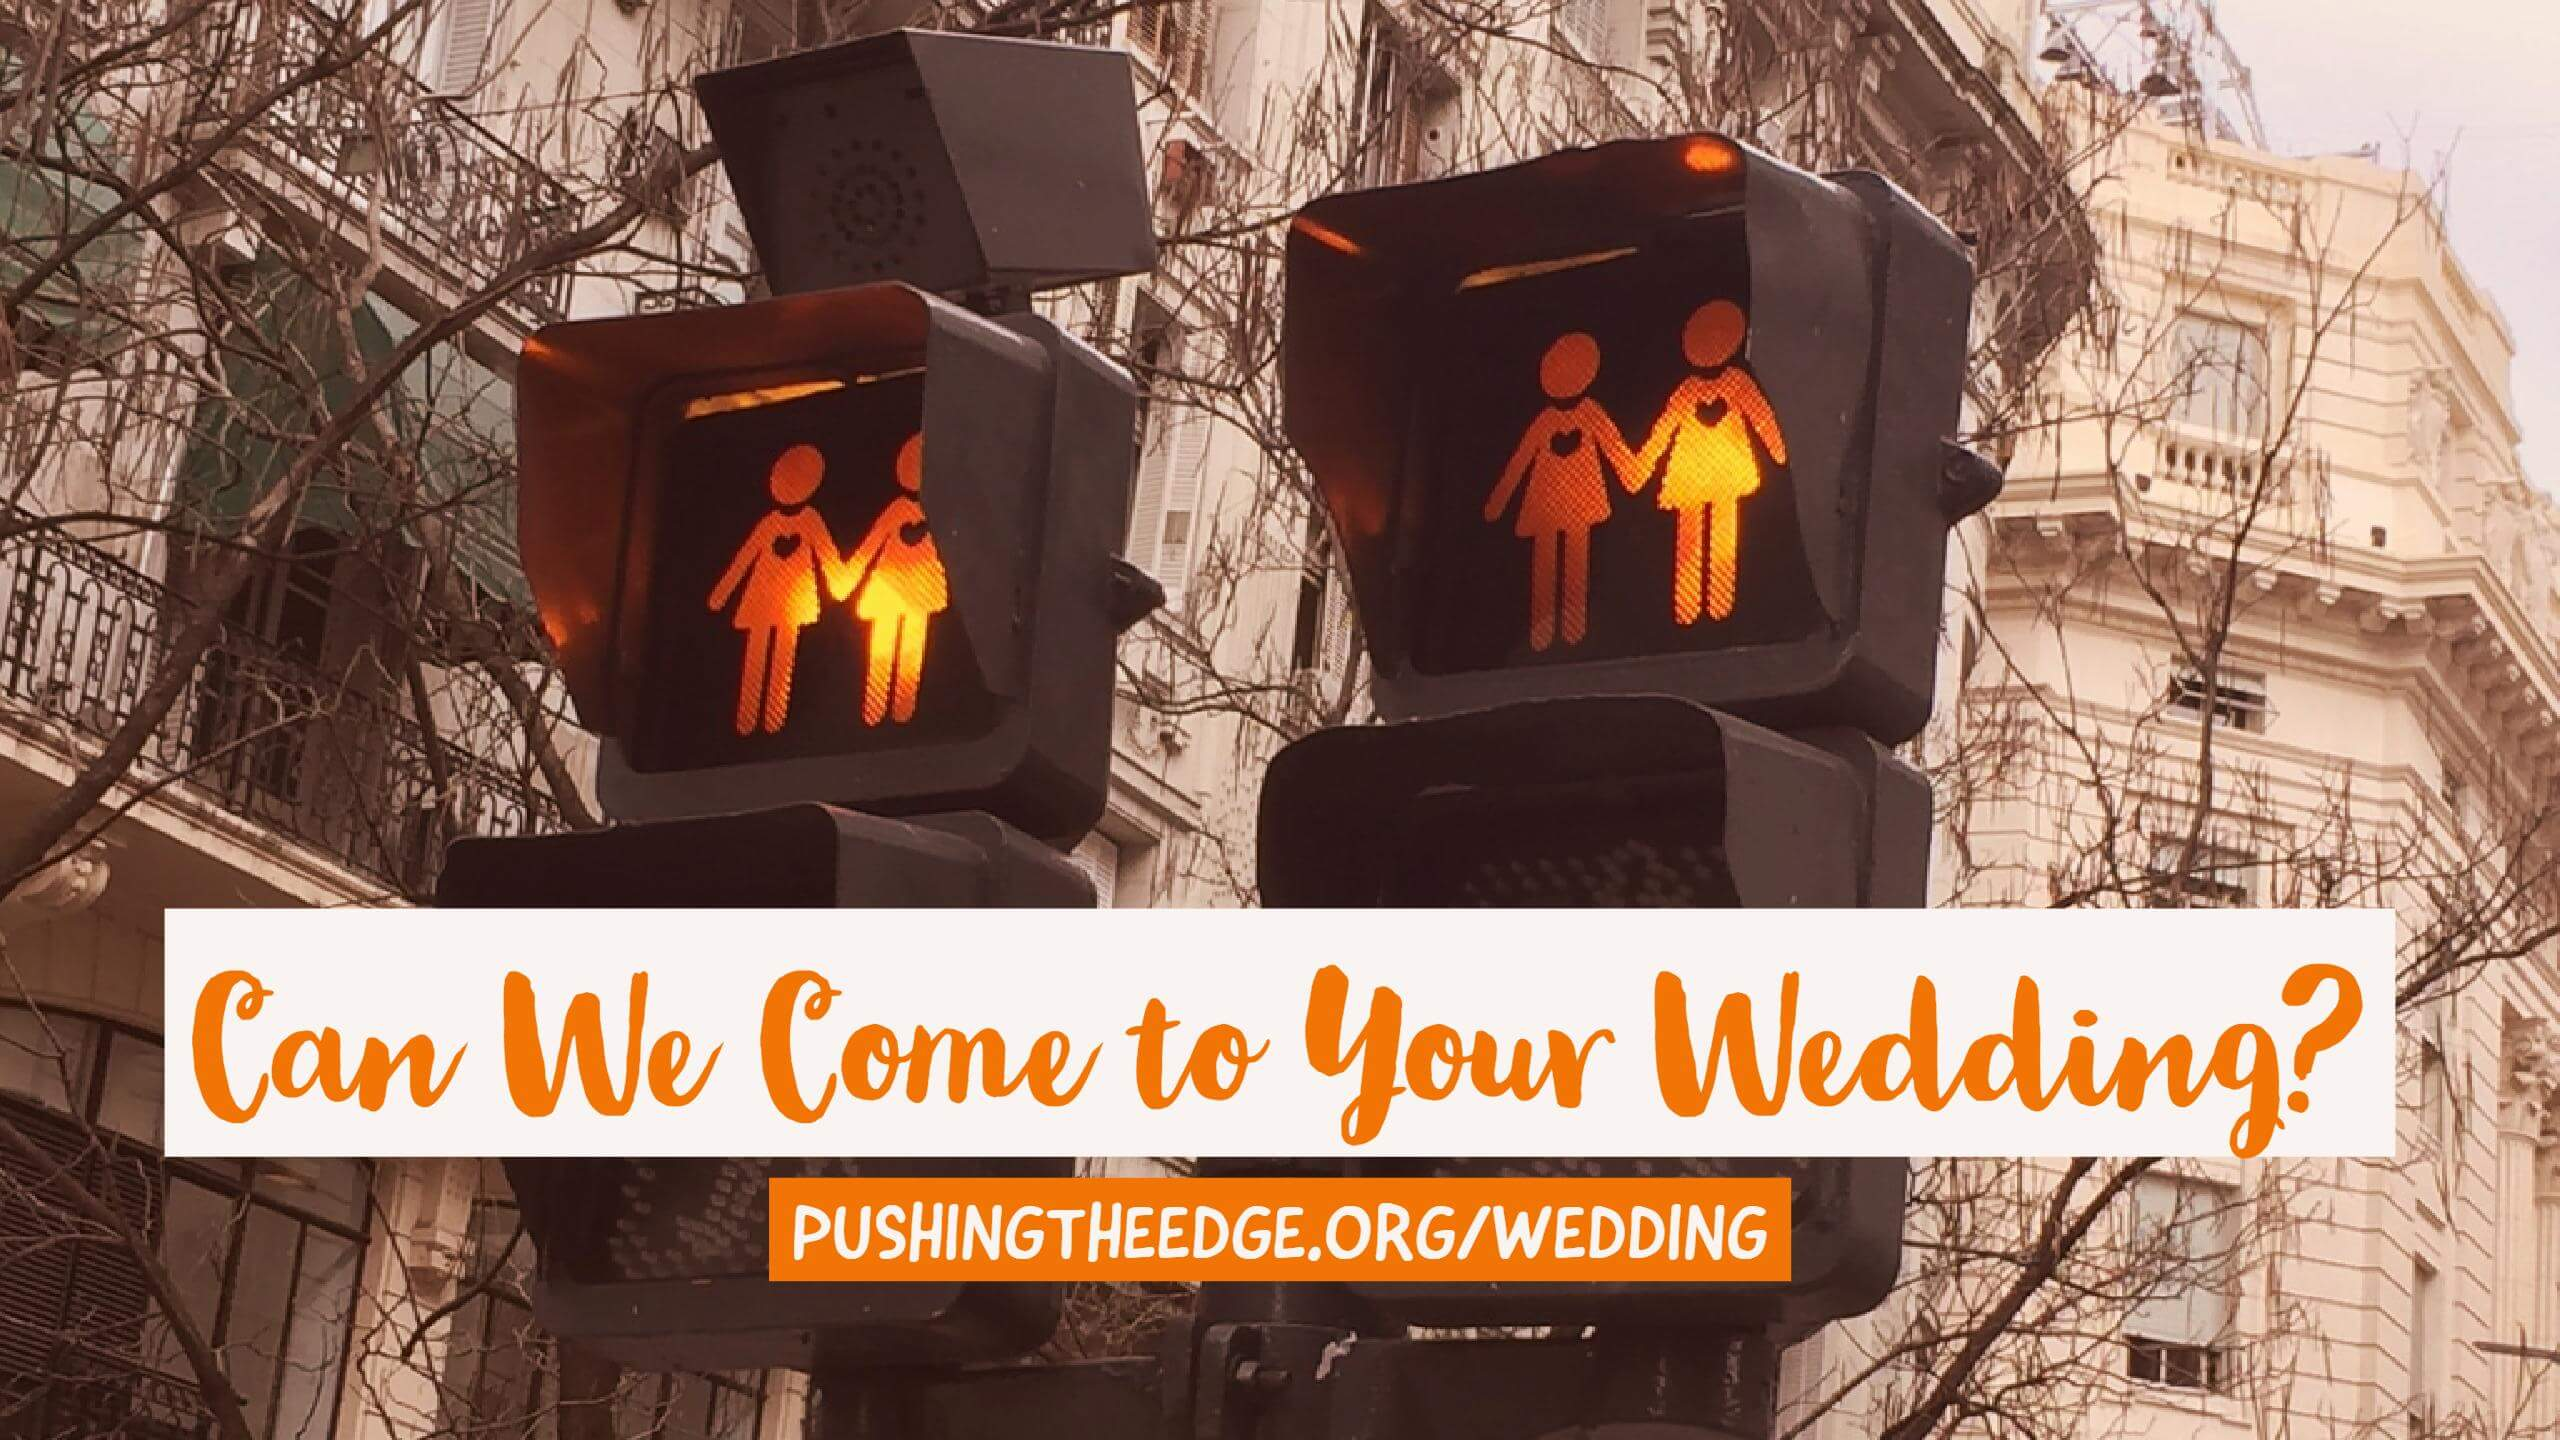 Image of traffic lights with same-sex couples. Text says - Can we come to your wedding